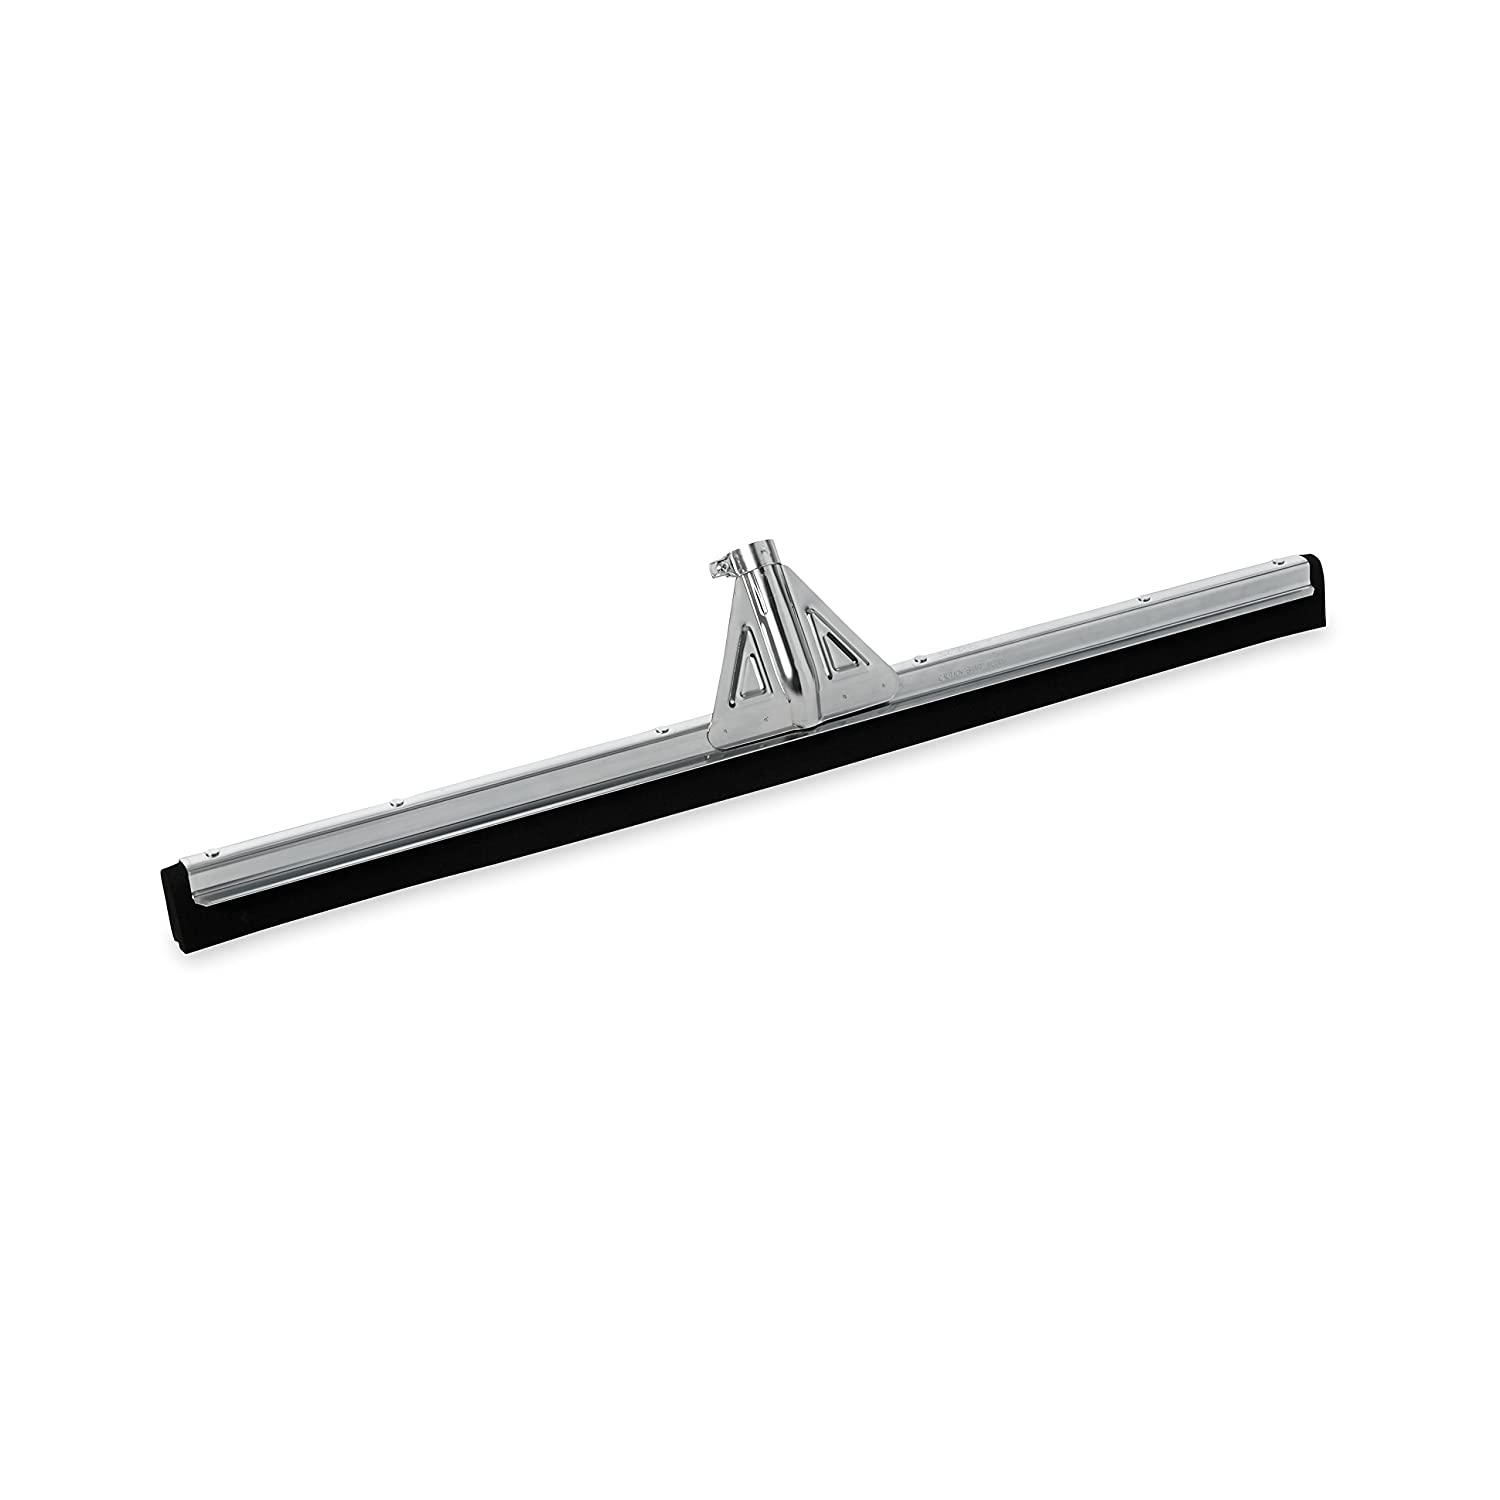 Rubbermaid Commercial Heavy-Duty Floor Dual Moss Squeegee, 30-Inch Length x 3.25-Inch Width x 5.5-Inch Height, Black (FG9C2900BLA)